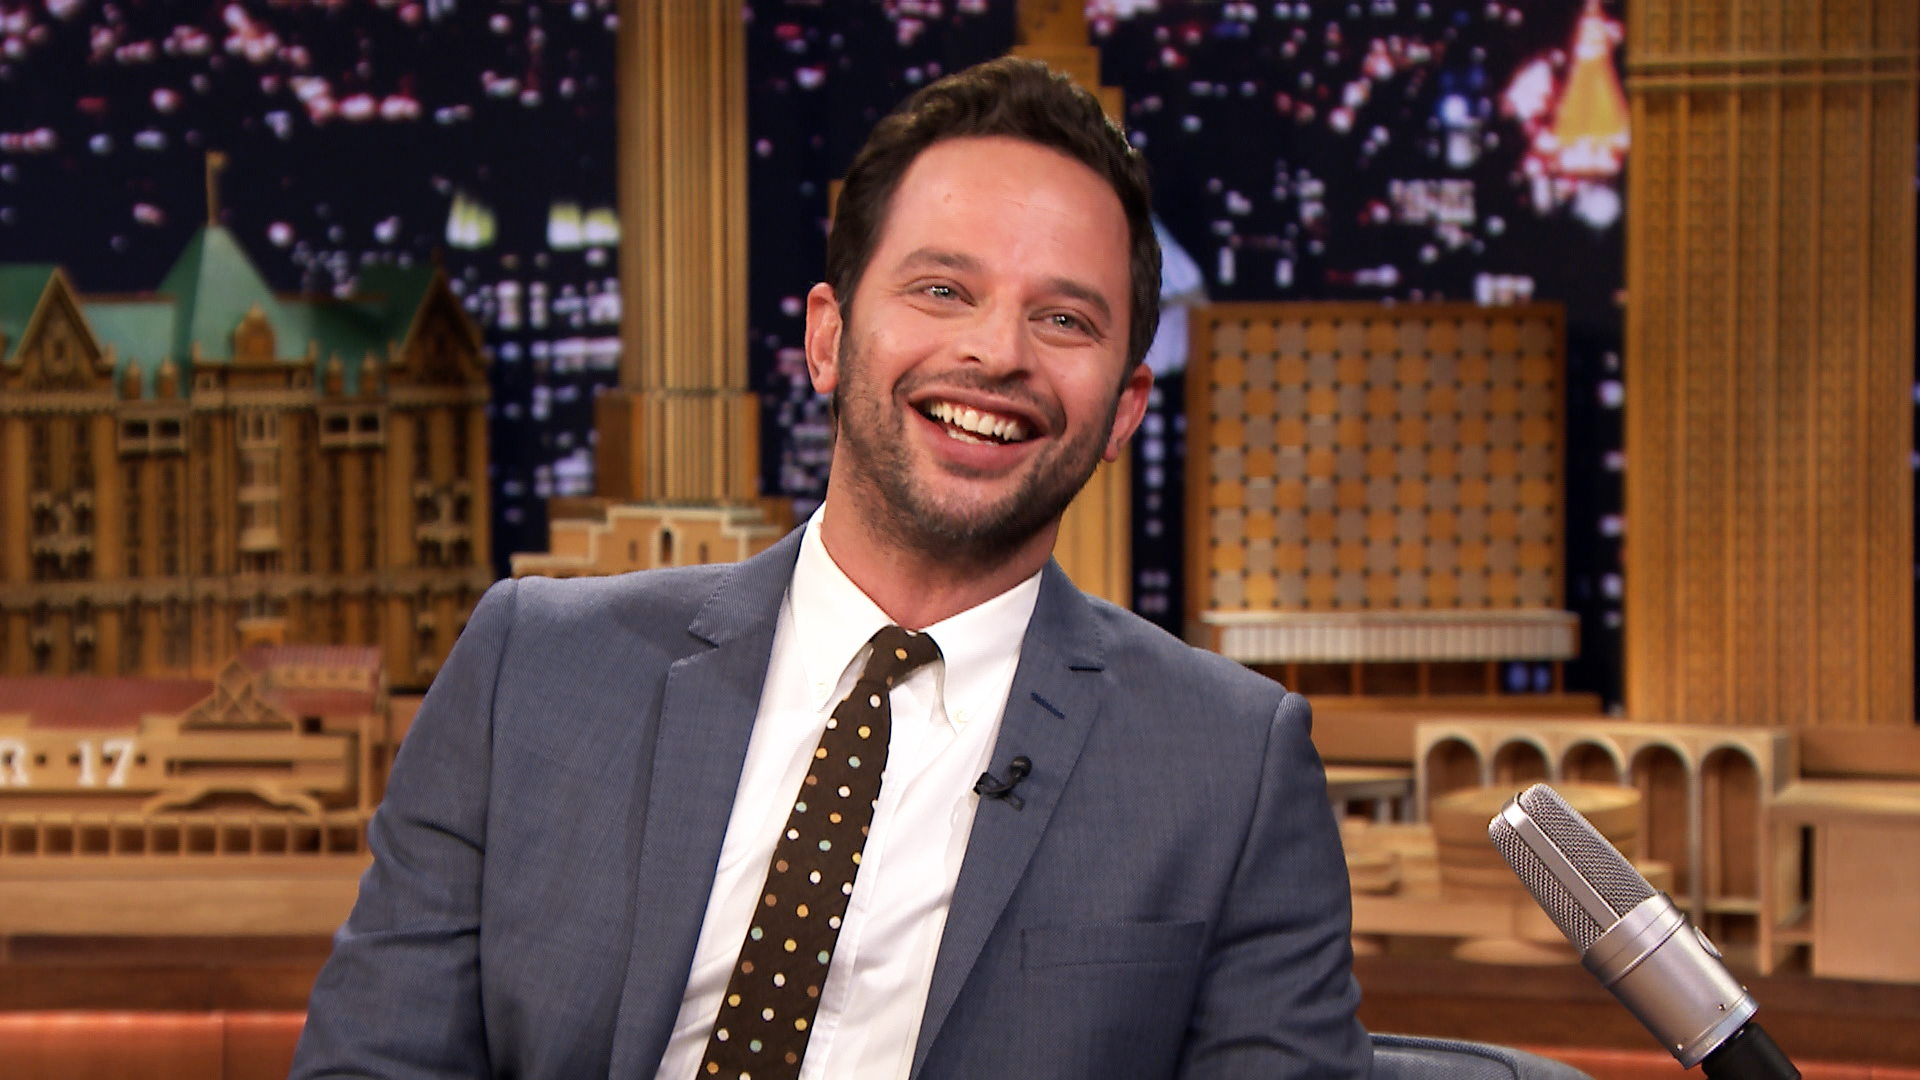 nick kroll communitynick kroll reese witherspoon, nick kroll shake it off скачать, nick kroll sing, nick kroll shake it off перевод, nick kroll reese witherspoon перевод, nick kroll reese witherspoon скачать, nick kroll venus, nick kroll community, nick kroll douche, nick kroll family guy, nick kroll song, nick kroll show, nick kroll shake it off mp3, nick kroll tour, nick kroll son